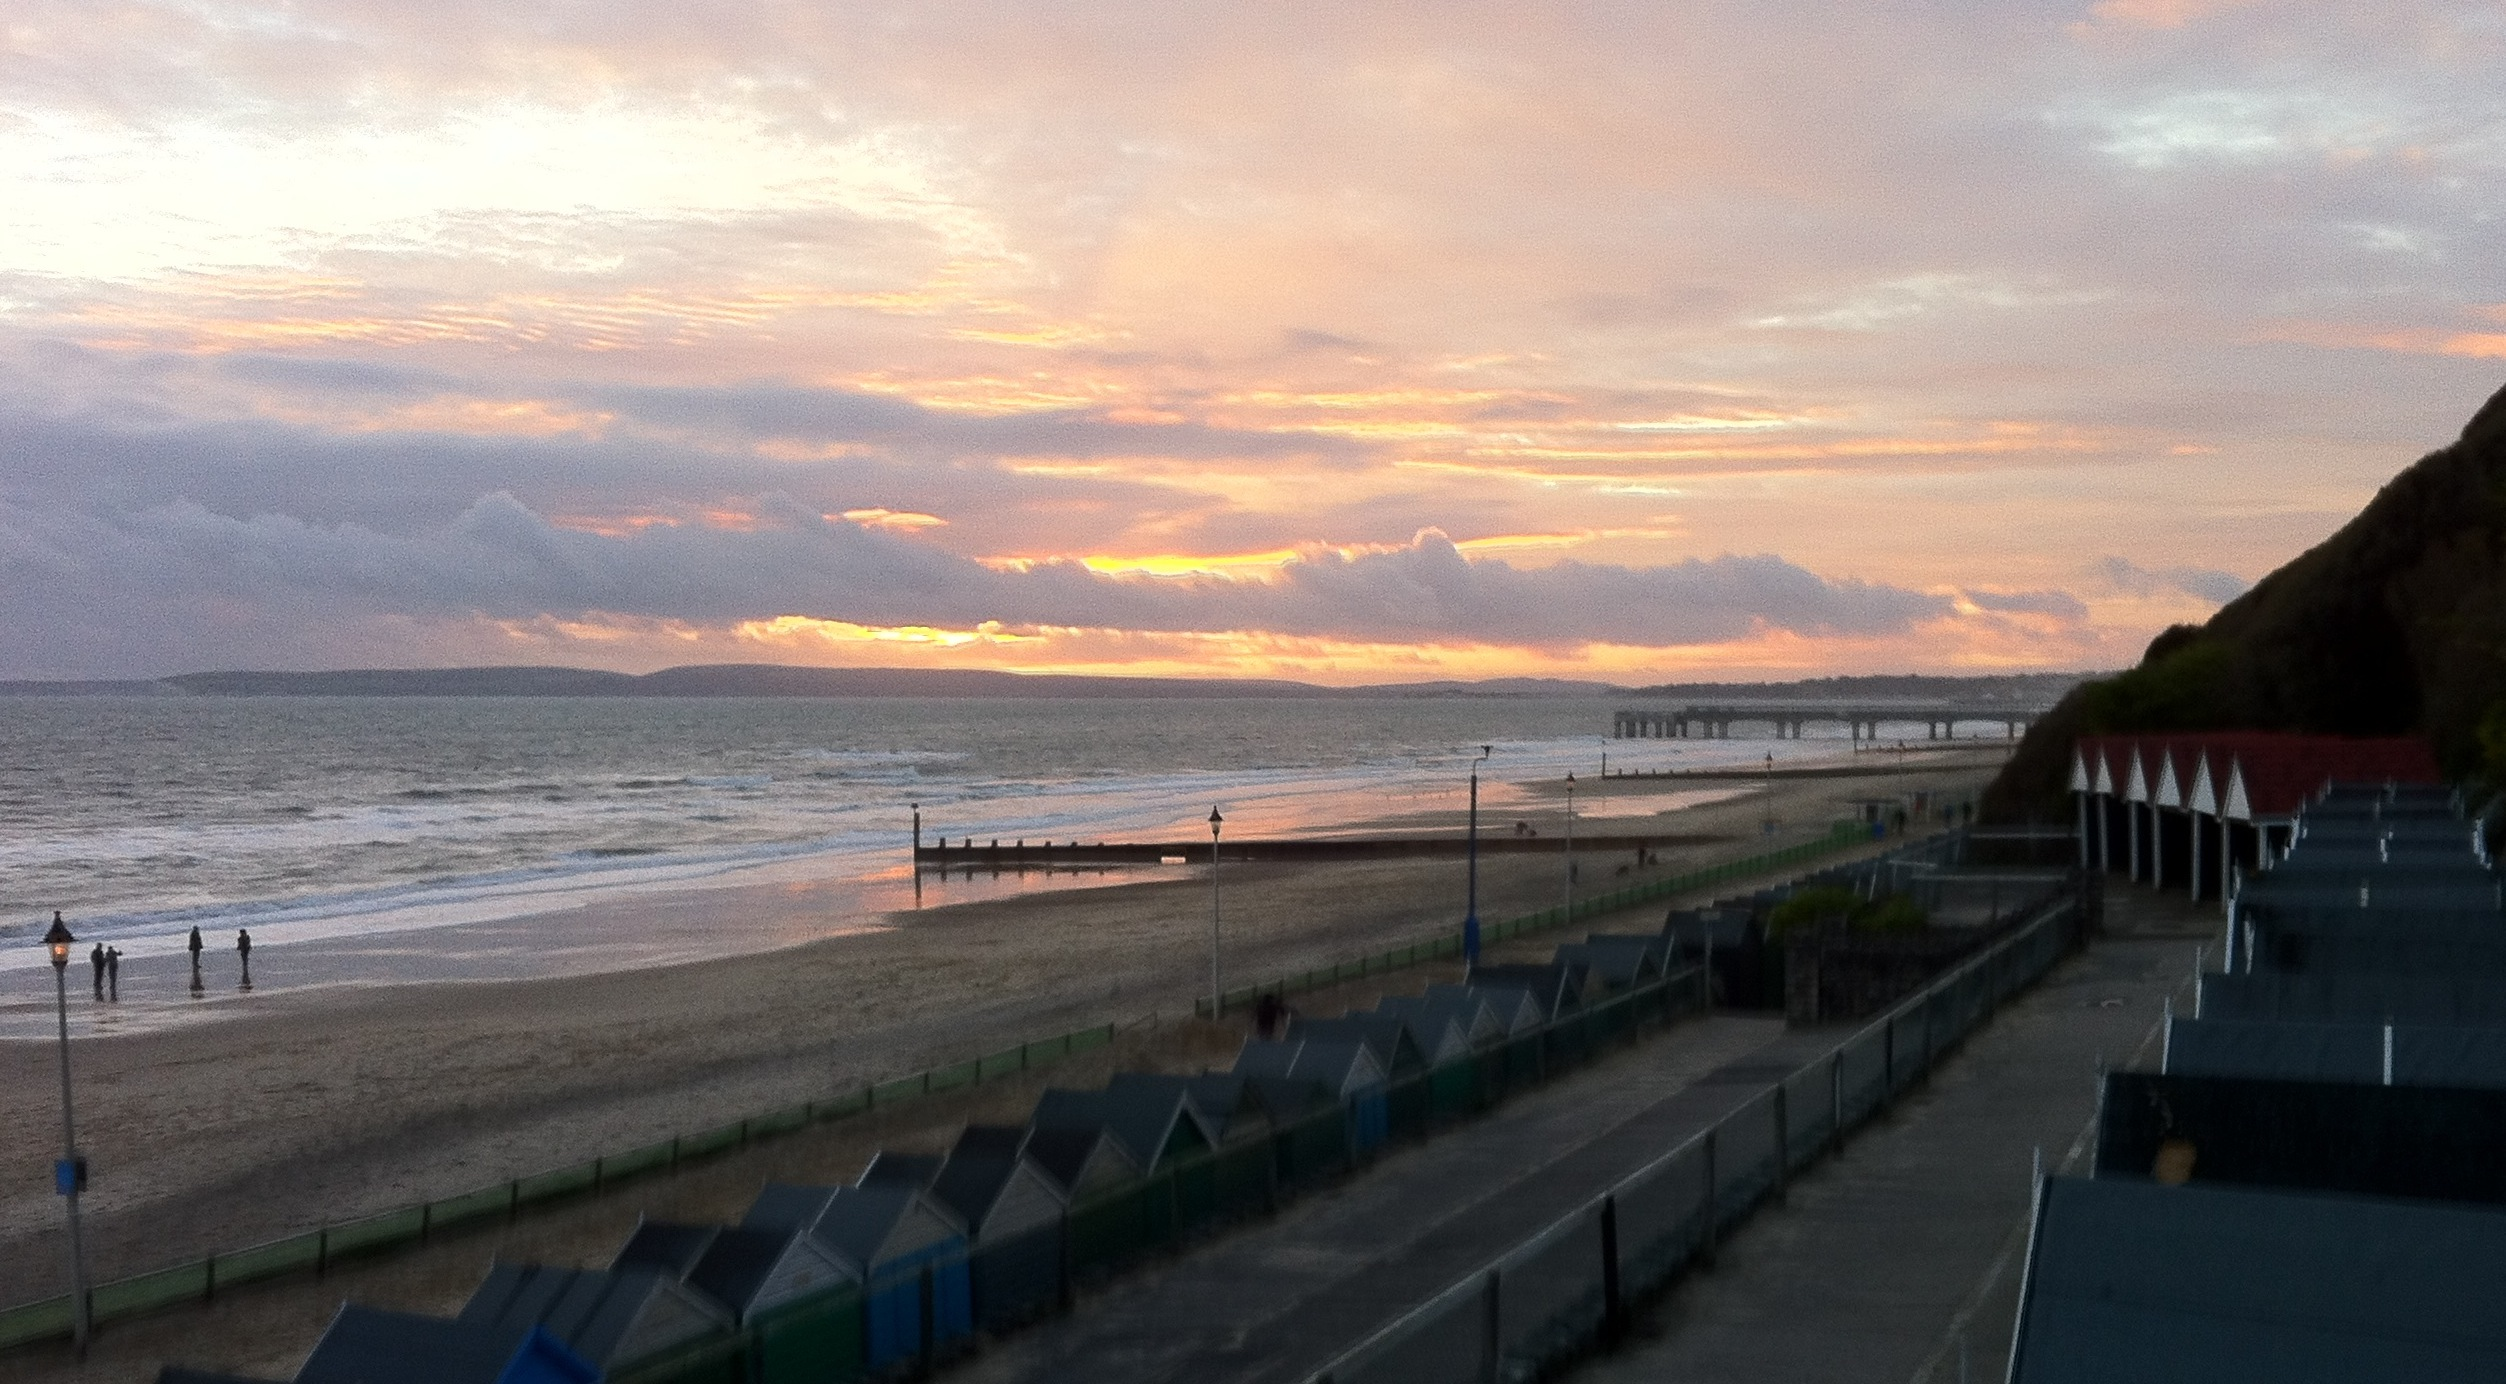 View of Boscombe beach and Bournemouth pier